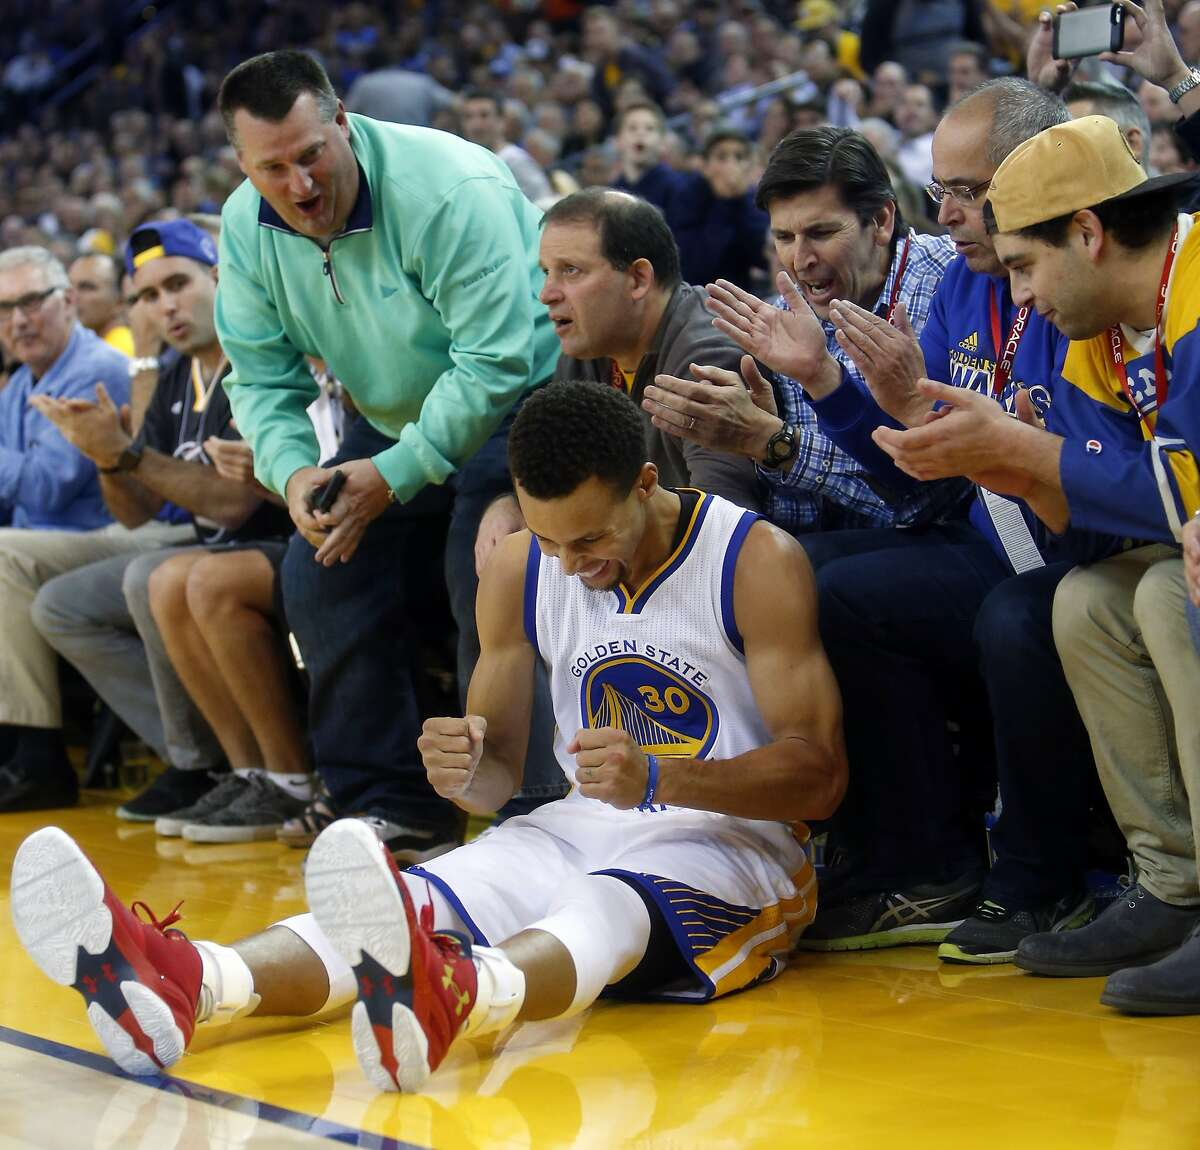 Golden State Warriors' Stephen Curry reacts to being fouled while shooting a 3-pointer against Los Angeles Clippers in 2nd quarter during NBA game at Oracle Arena in Oakland, Calif., on Wednesday, November 4, 2015.